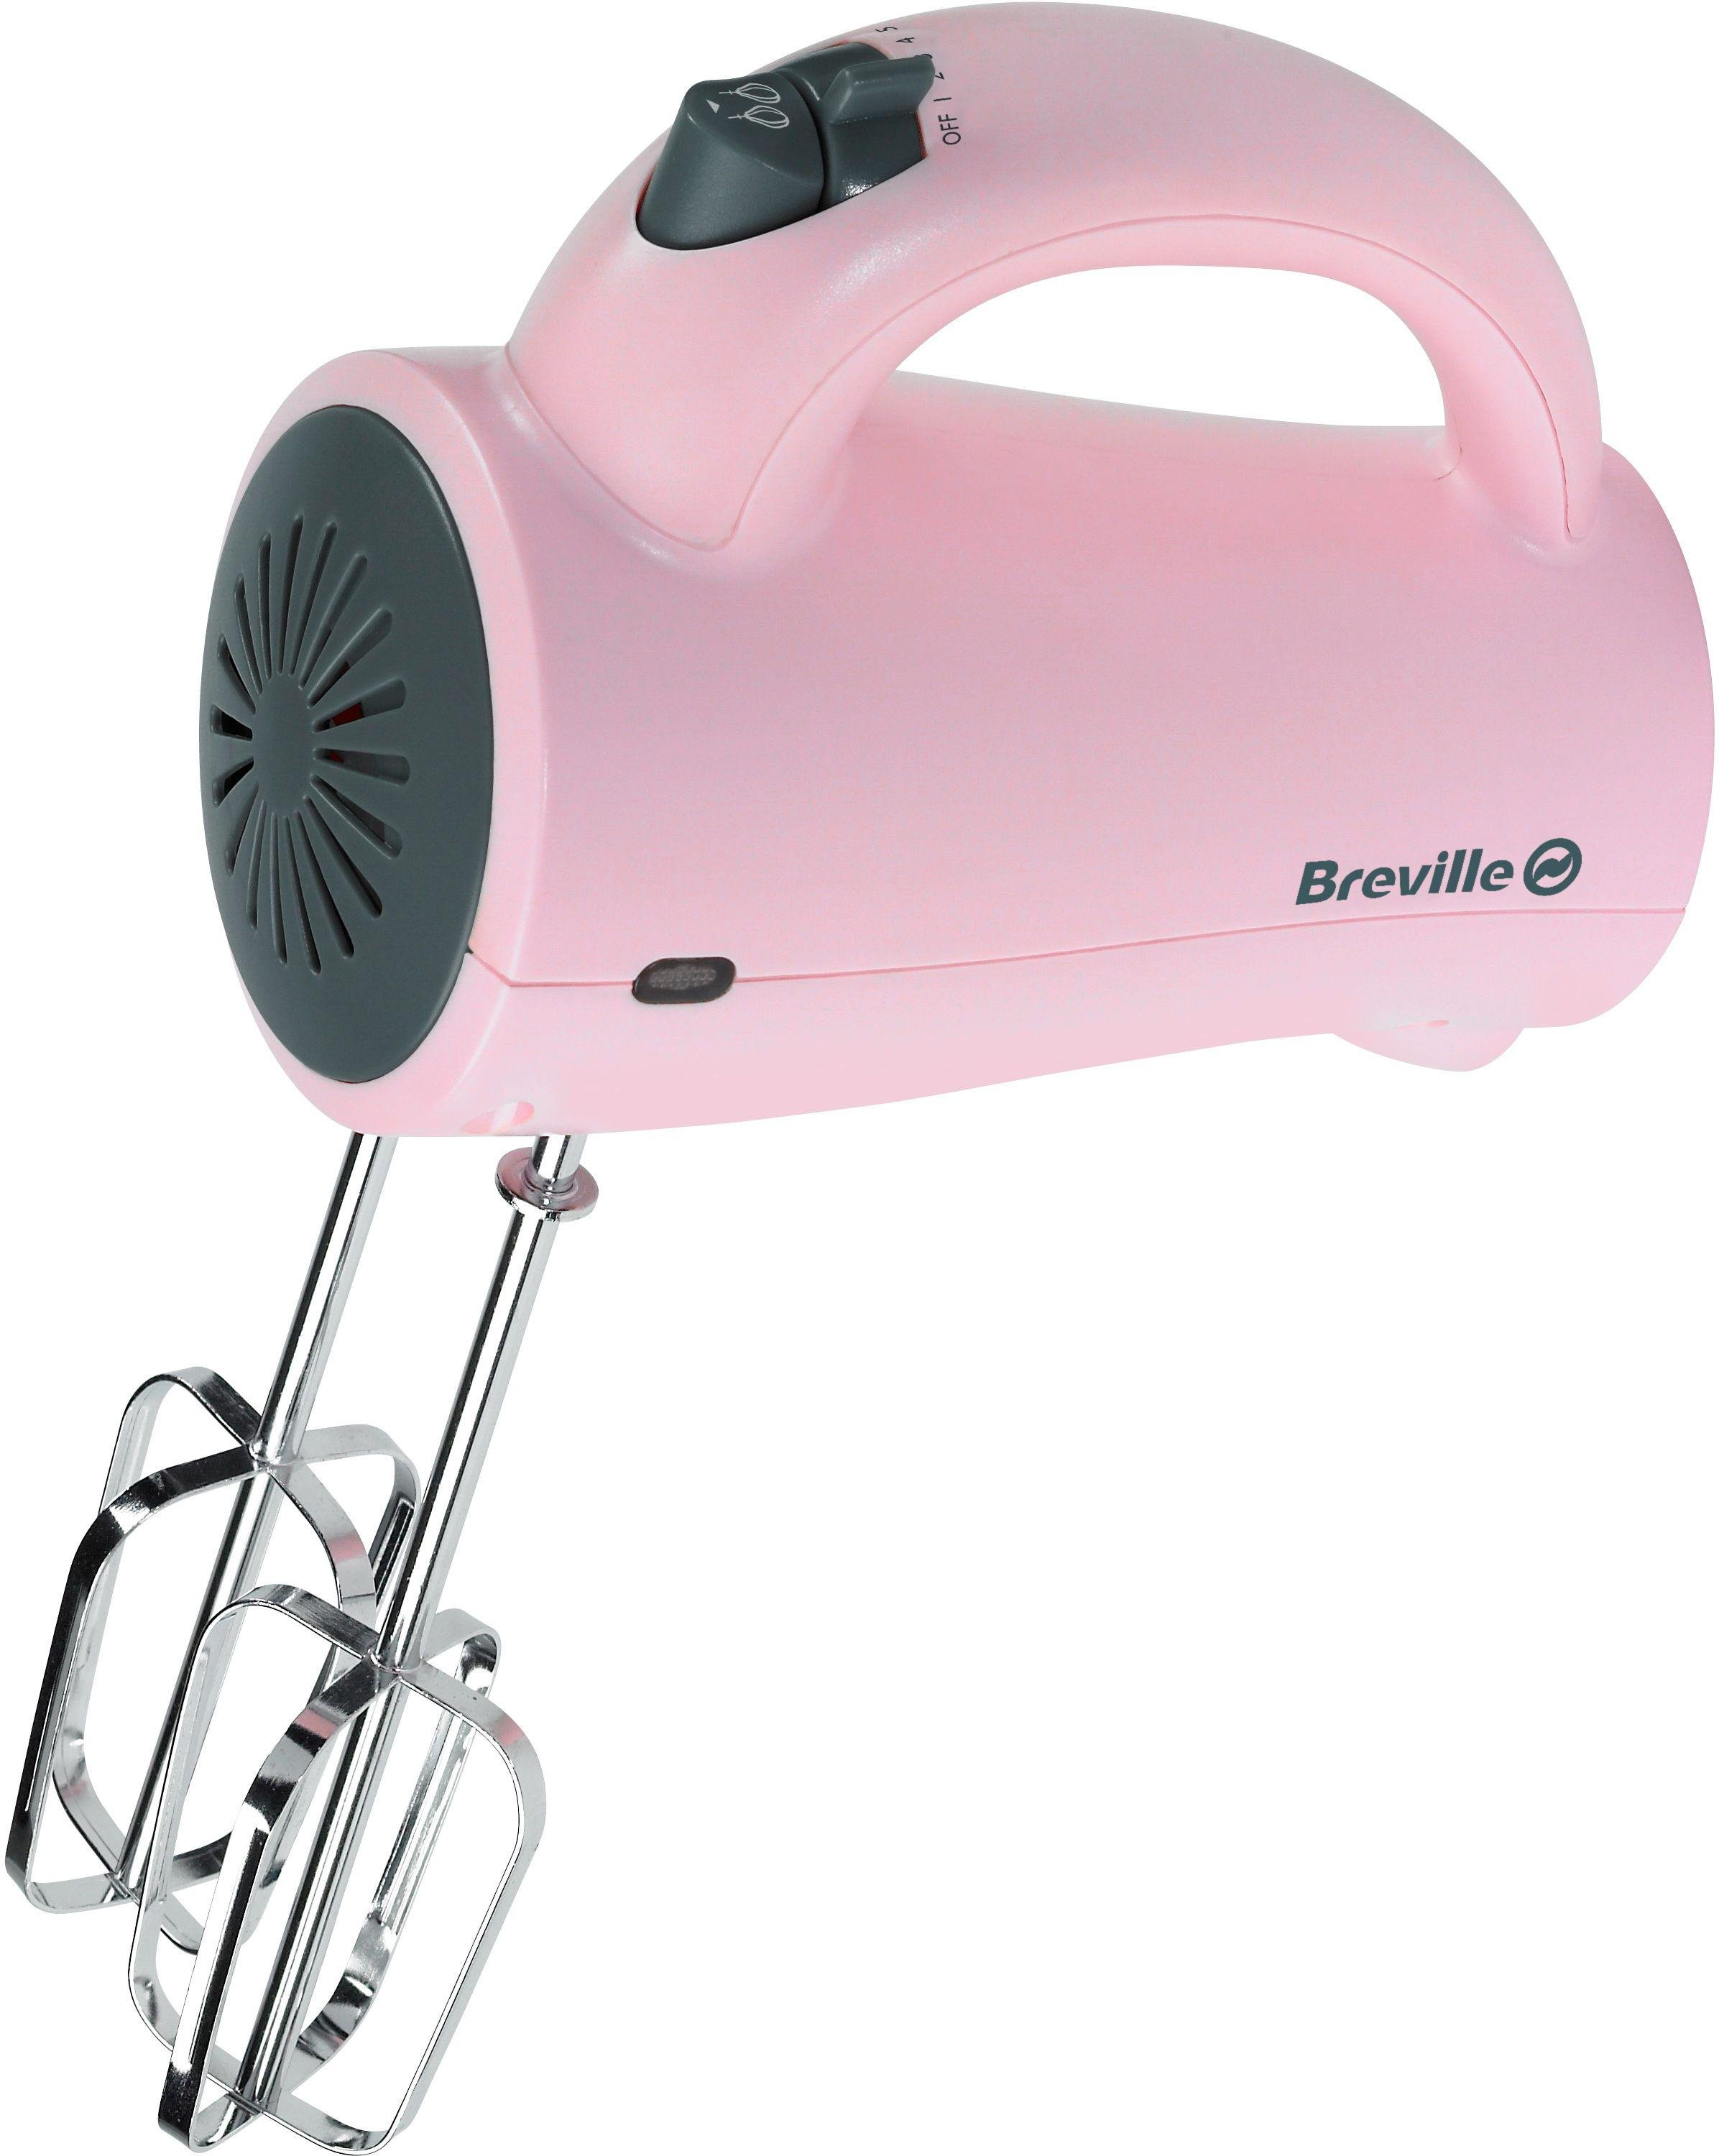 Breville – Pick and Mix – Hand Mixer – Strawberry and Cream